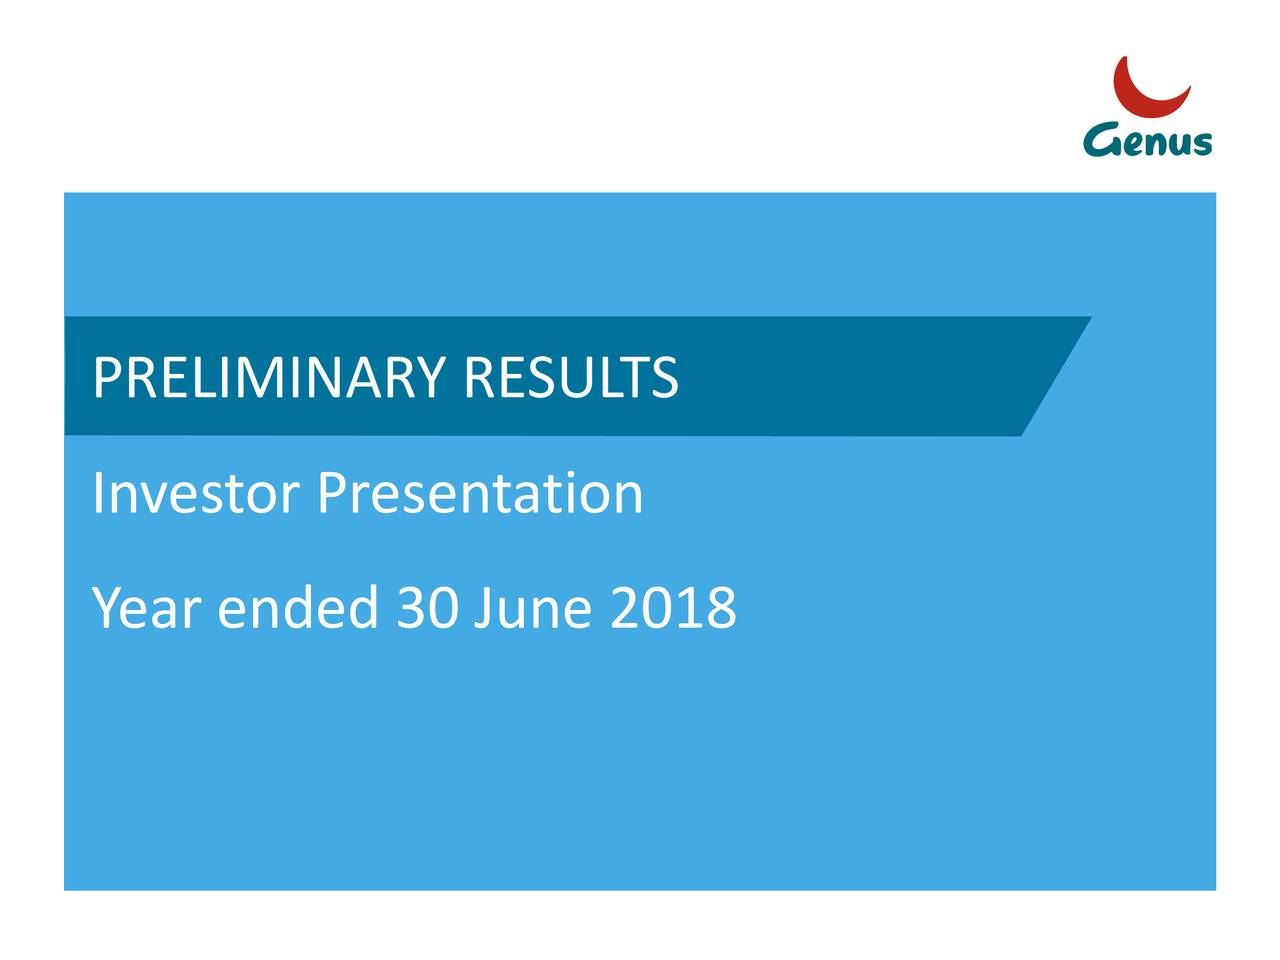 Investor Presentation Year ended 30 June 2018